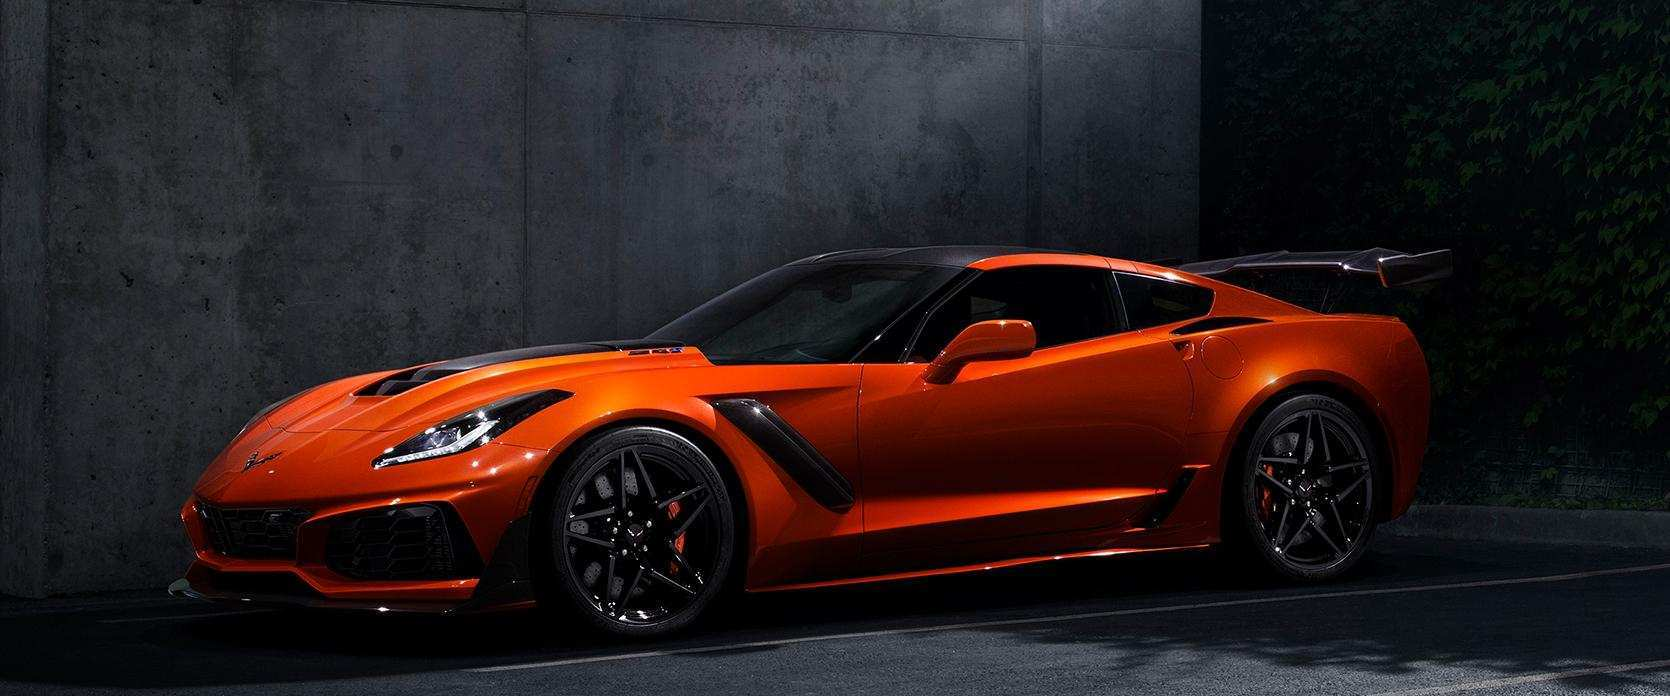 73 Best Review 2019 Chevrolet Zr1 Price Concept with 2019 Chevrolet Zr1 Price